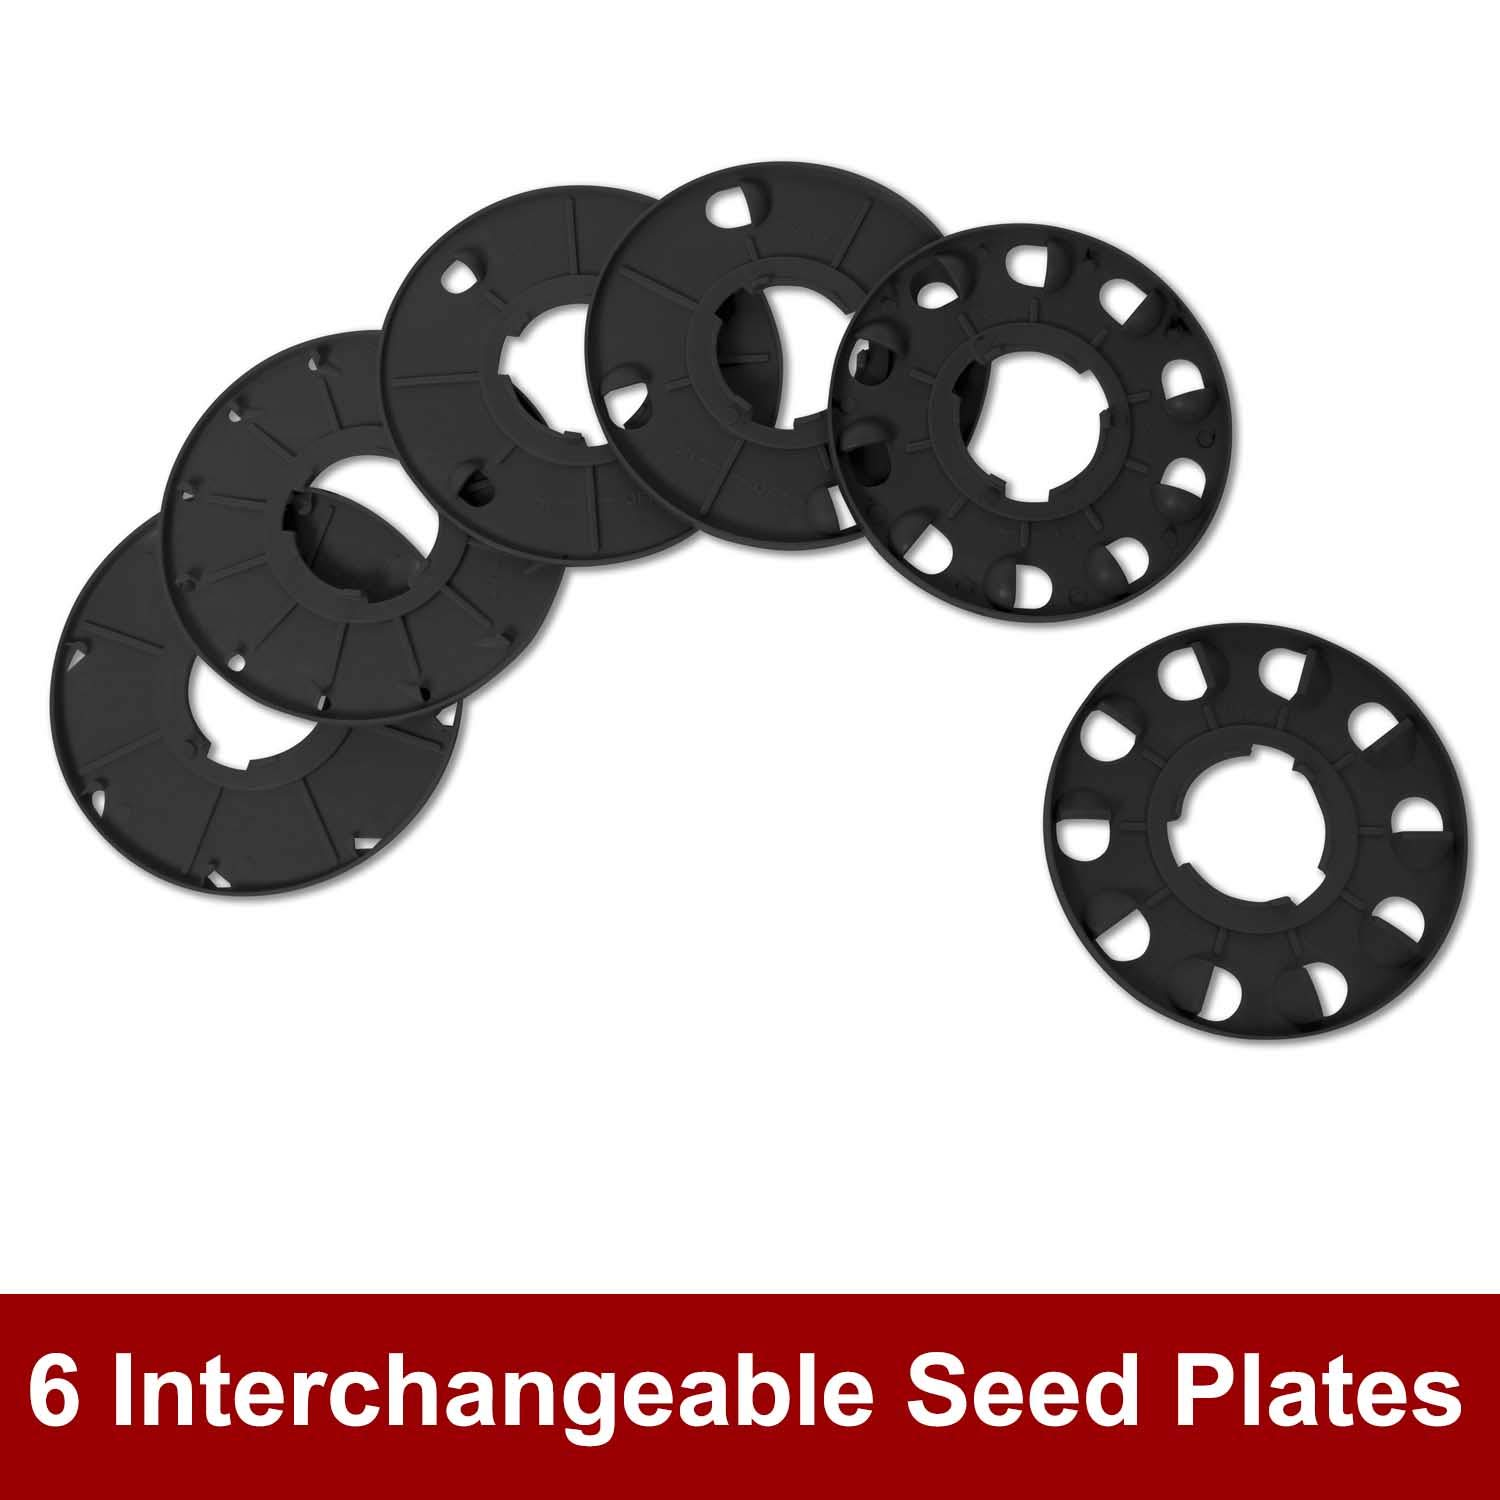 Chapin 8701b Garden Push Seeder With 6 Seed Plates For Up To 20 Varieties Of Seeds 1 Garden Seeder Package